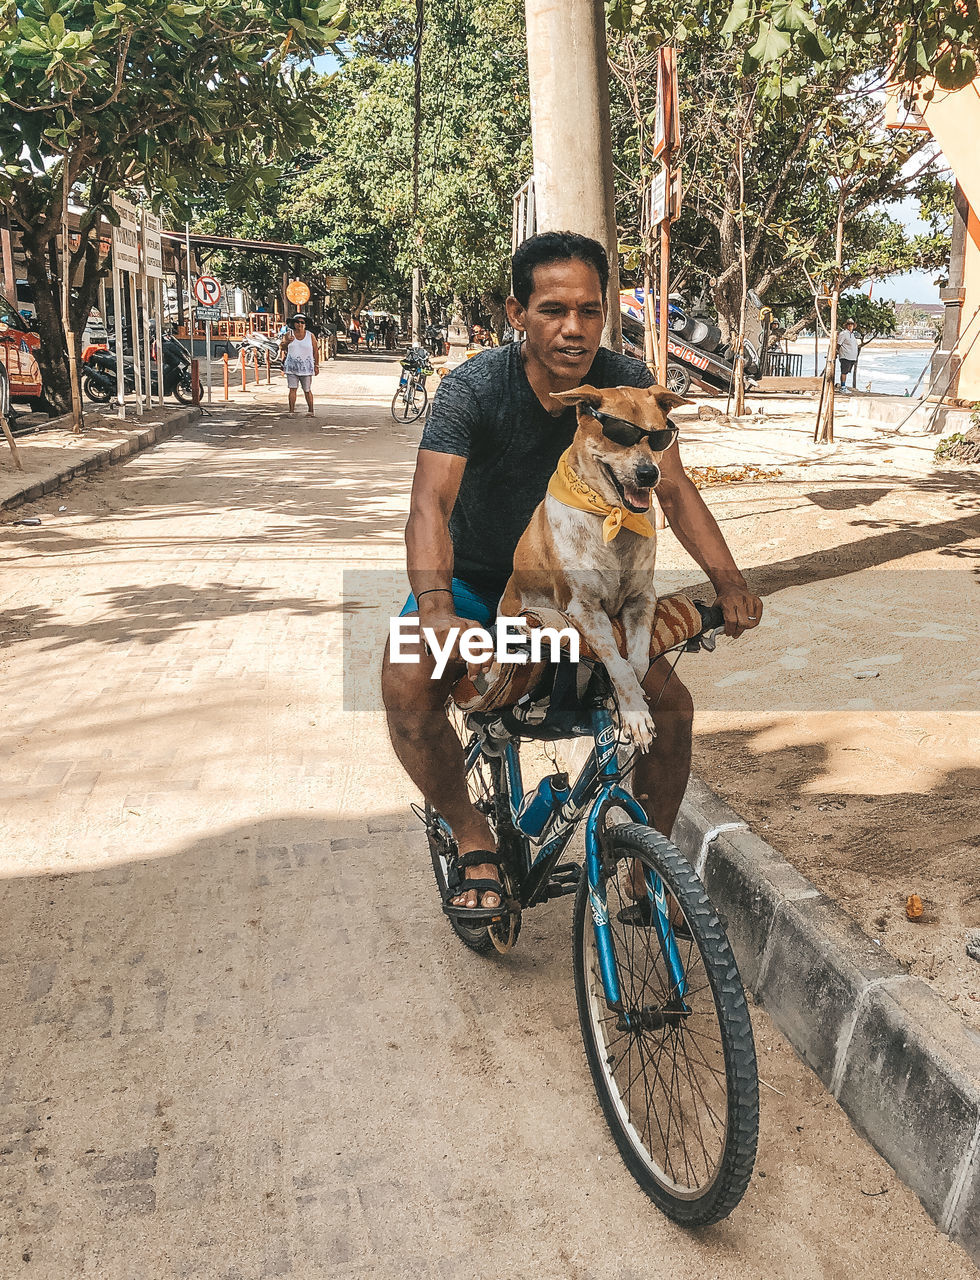 real people, tree, incidental people, transportation, one person, full length, city, lifestyles, land vehicle, men, ride, plant, riding, sunlight, casual clothing, bicycle, mode of transportation, leisure activity, street, outdoors